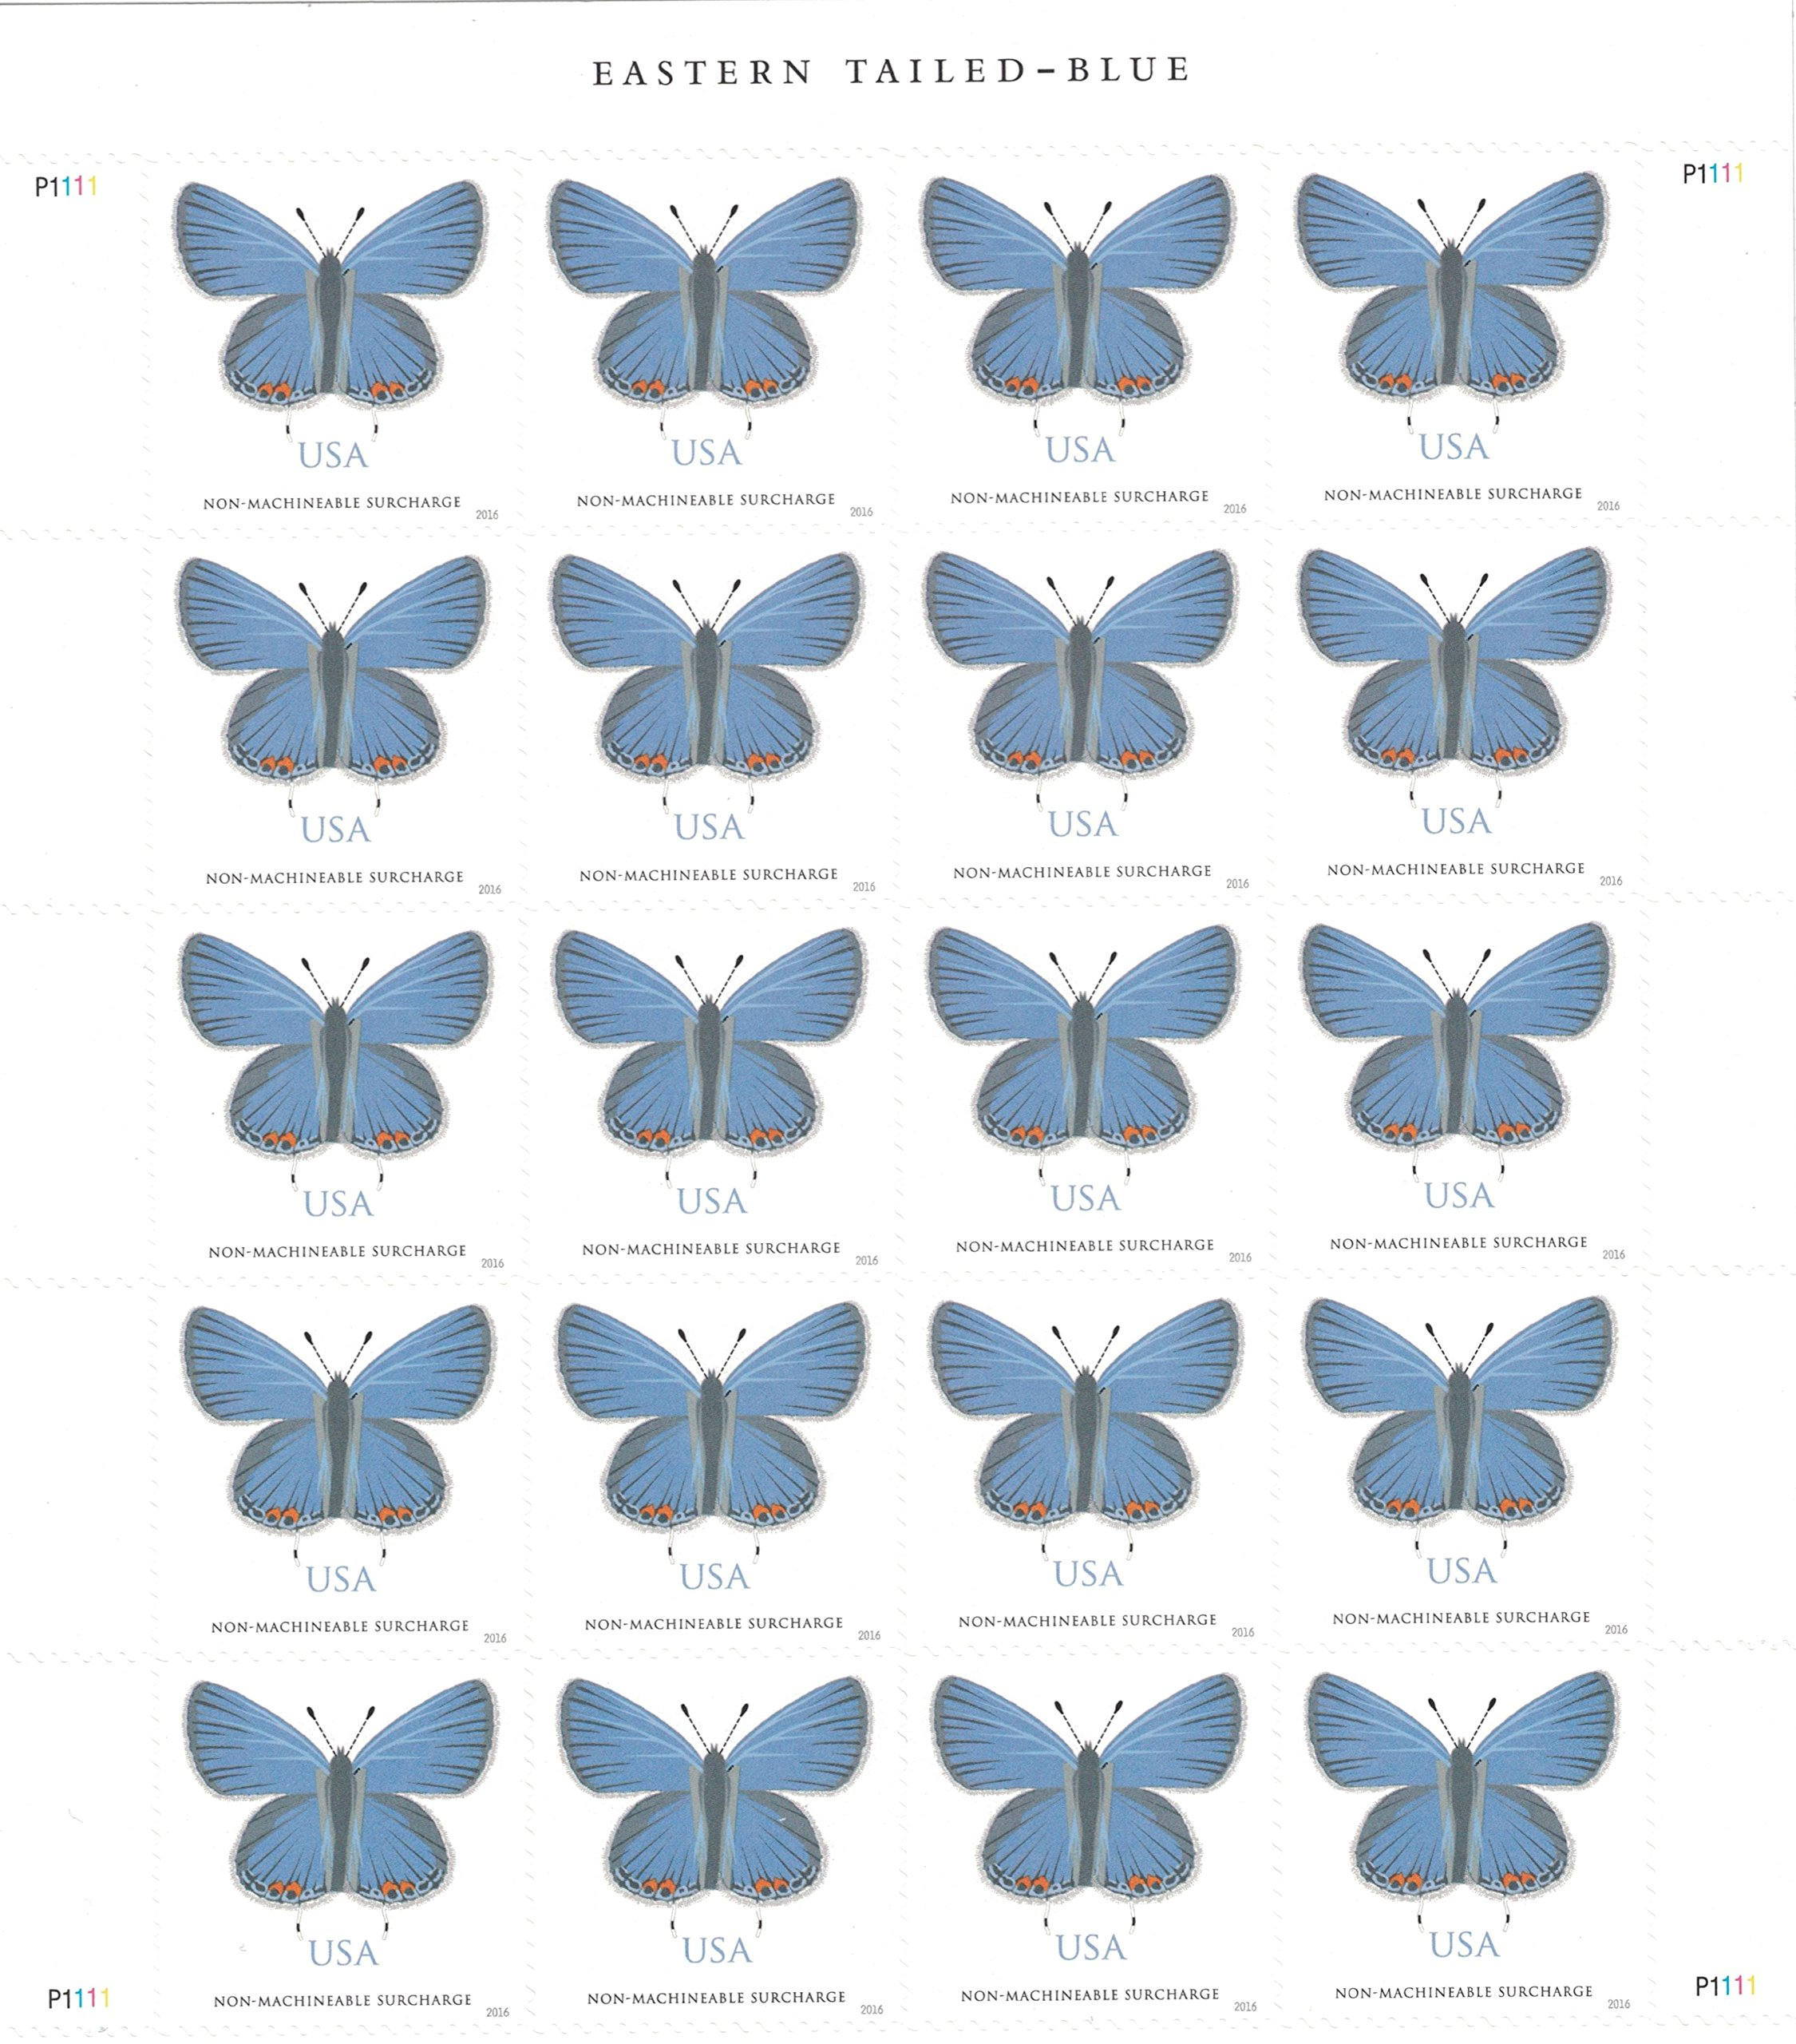 Get Quotations Usps Eastern Tailed Blue Sheet Of 20 Stamps Two Ounce Forever